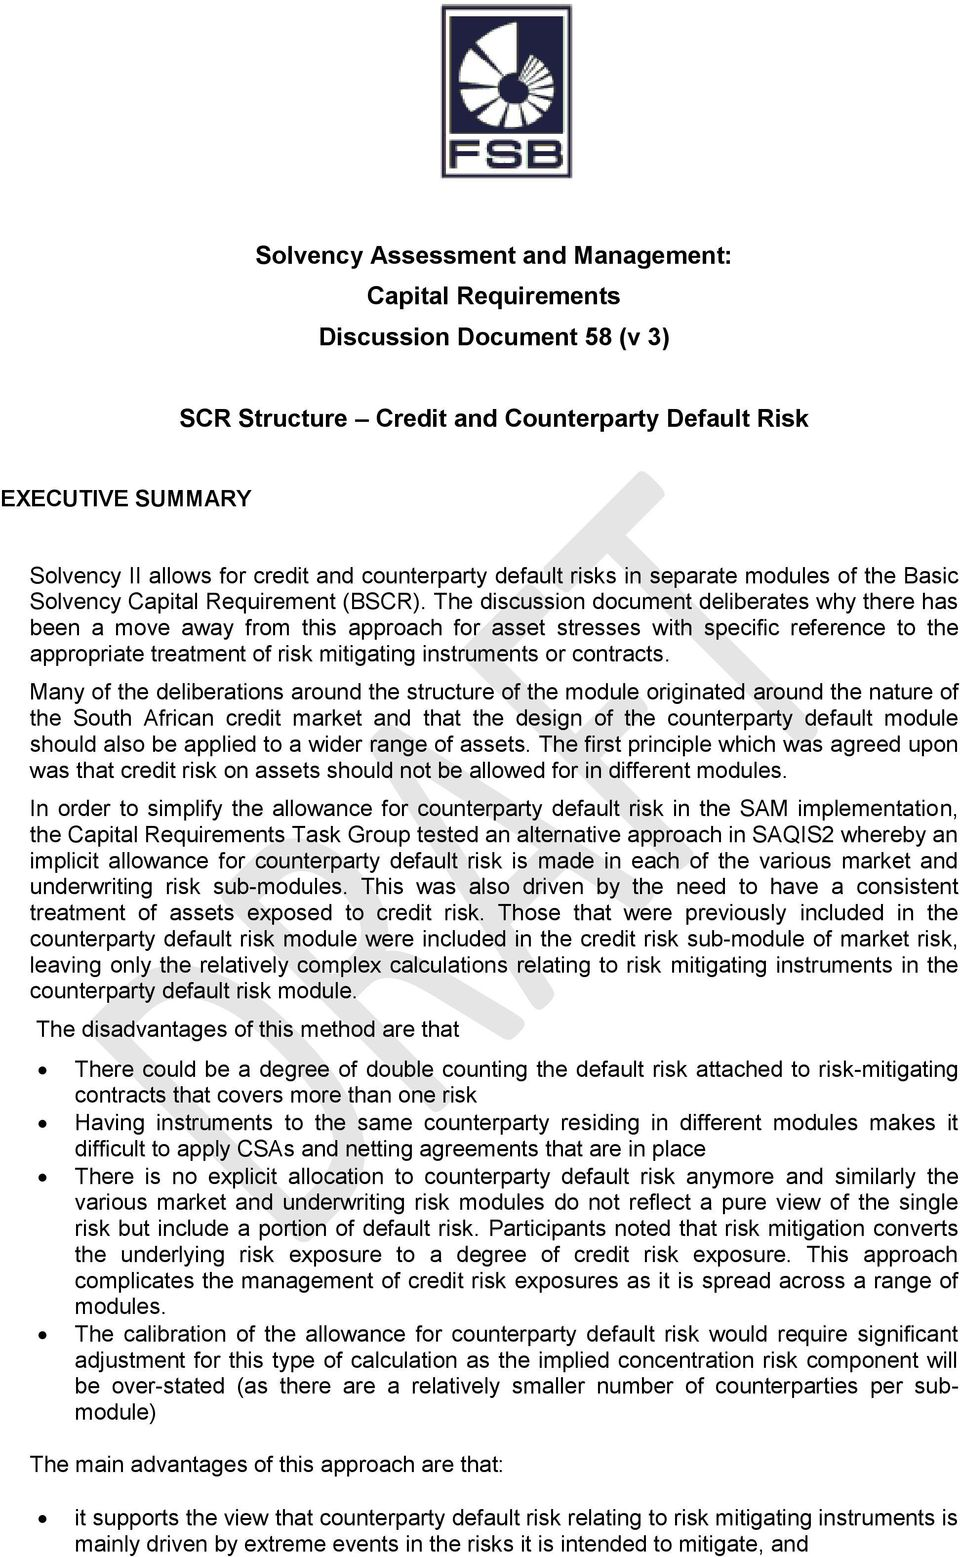 The discussion document deliberates why there has been a move away from this approach for asset stresses with specific reference to the appropriate treatment of risk mitigating instruments or